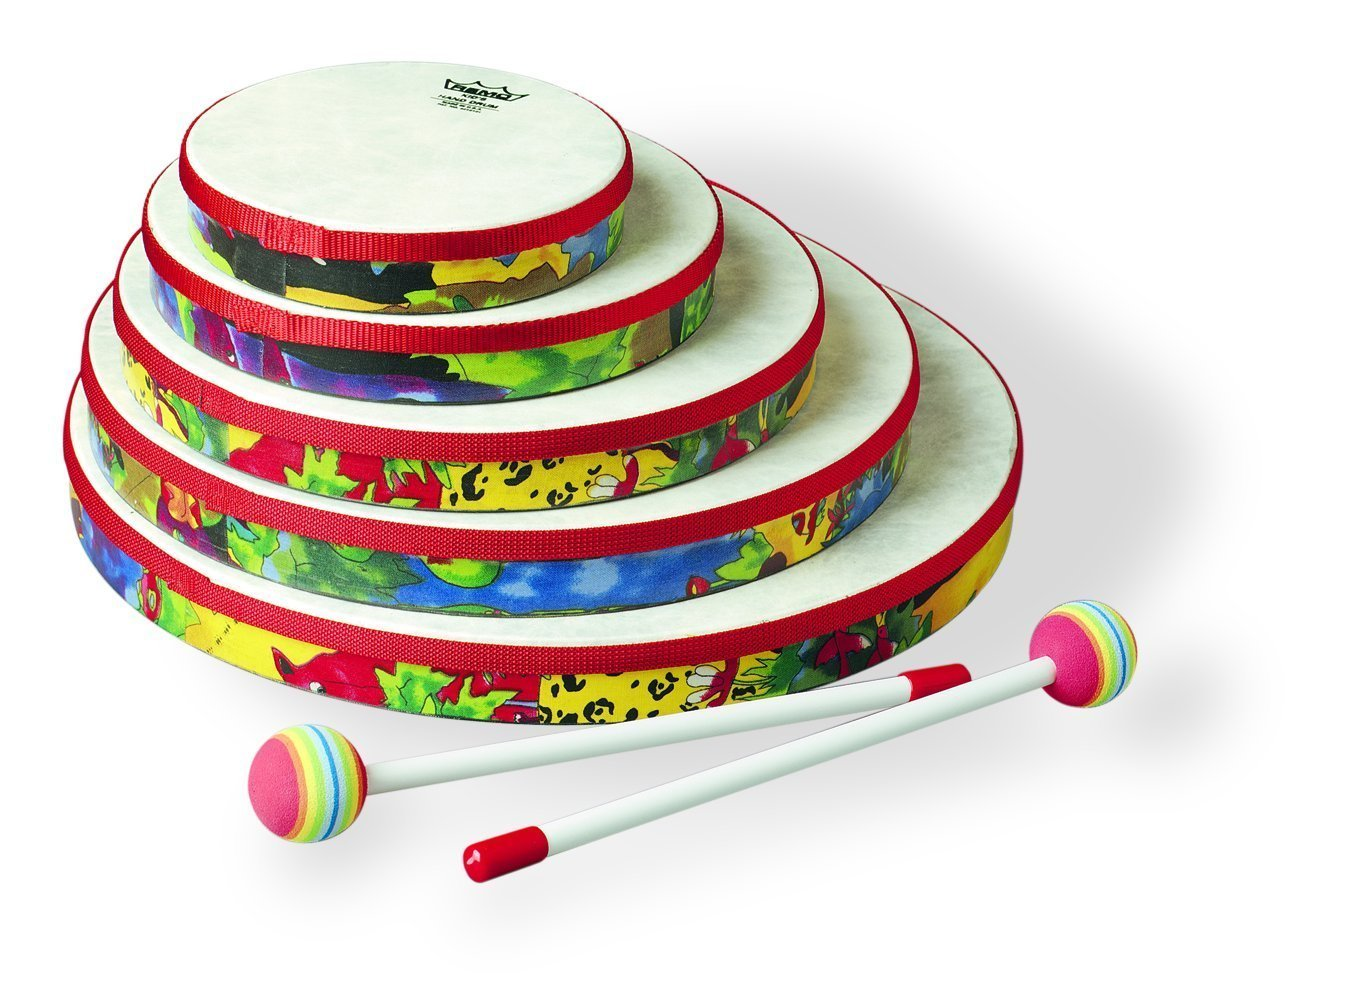 Remo Kid's Percussion Set of 5 Hand Drums (6 - 14 in) in Rainforest Design (Age 5+) by Remo